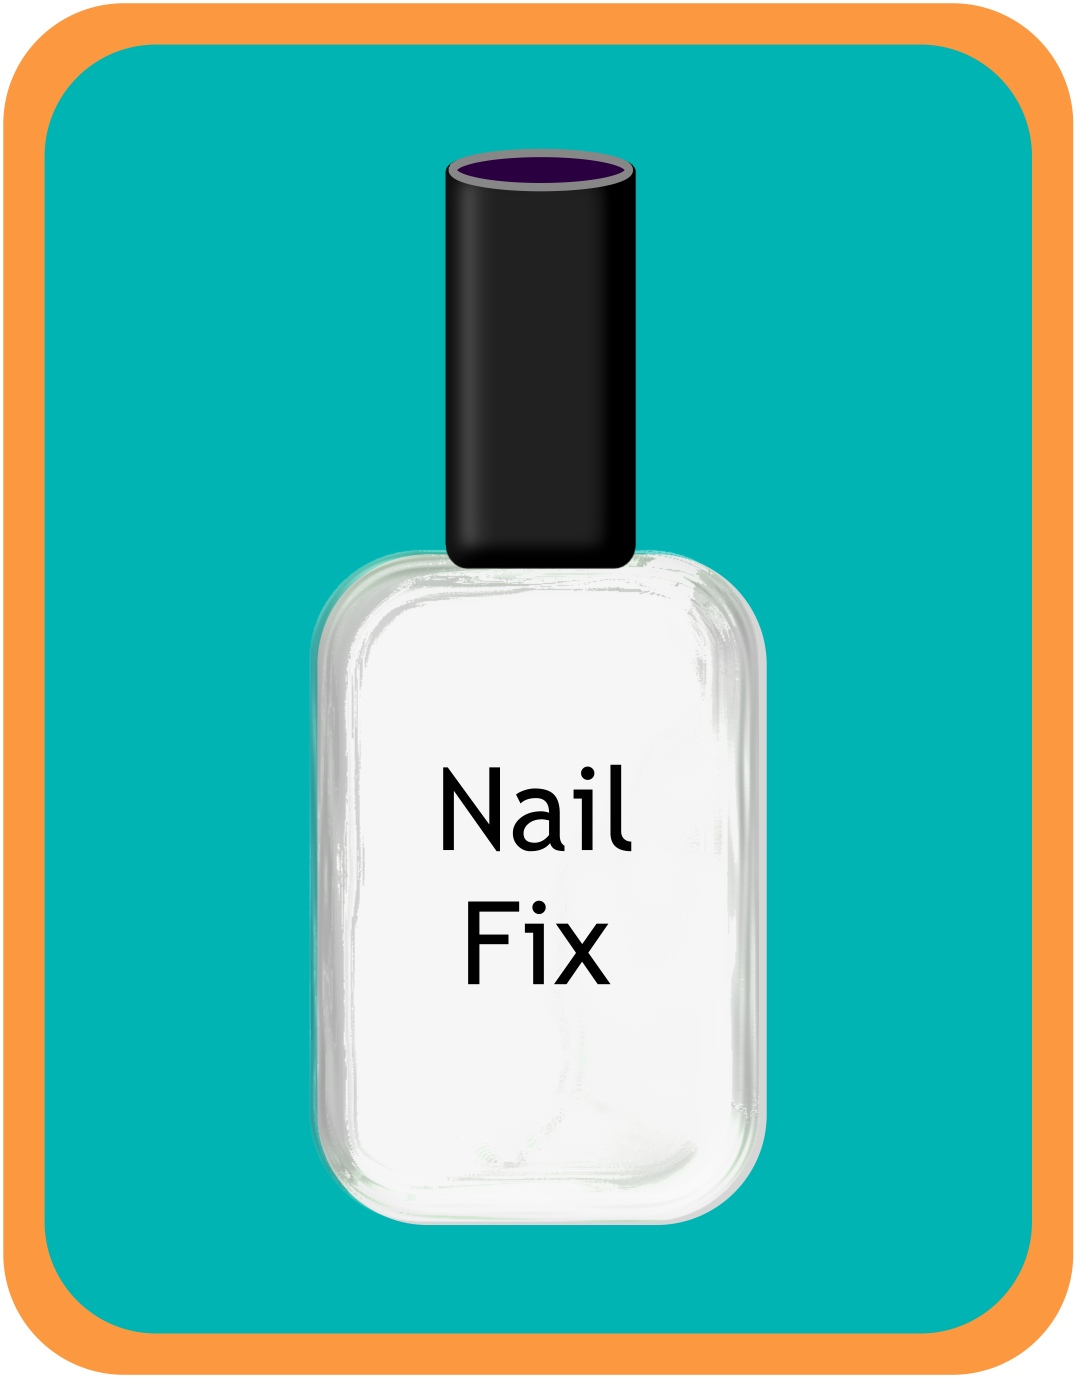 Nail Hack for removing Gel Nails